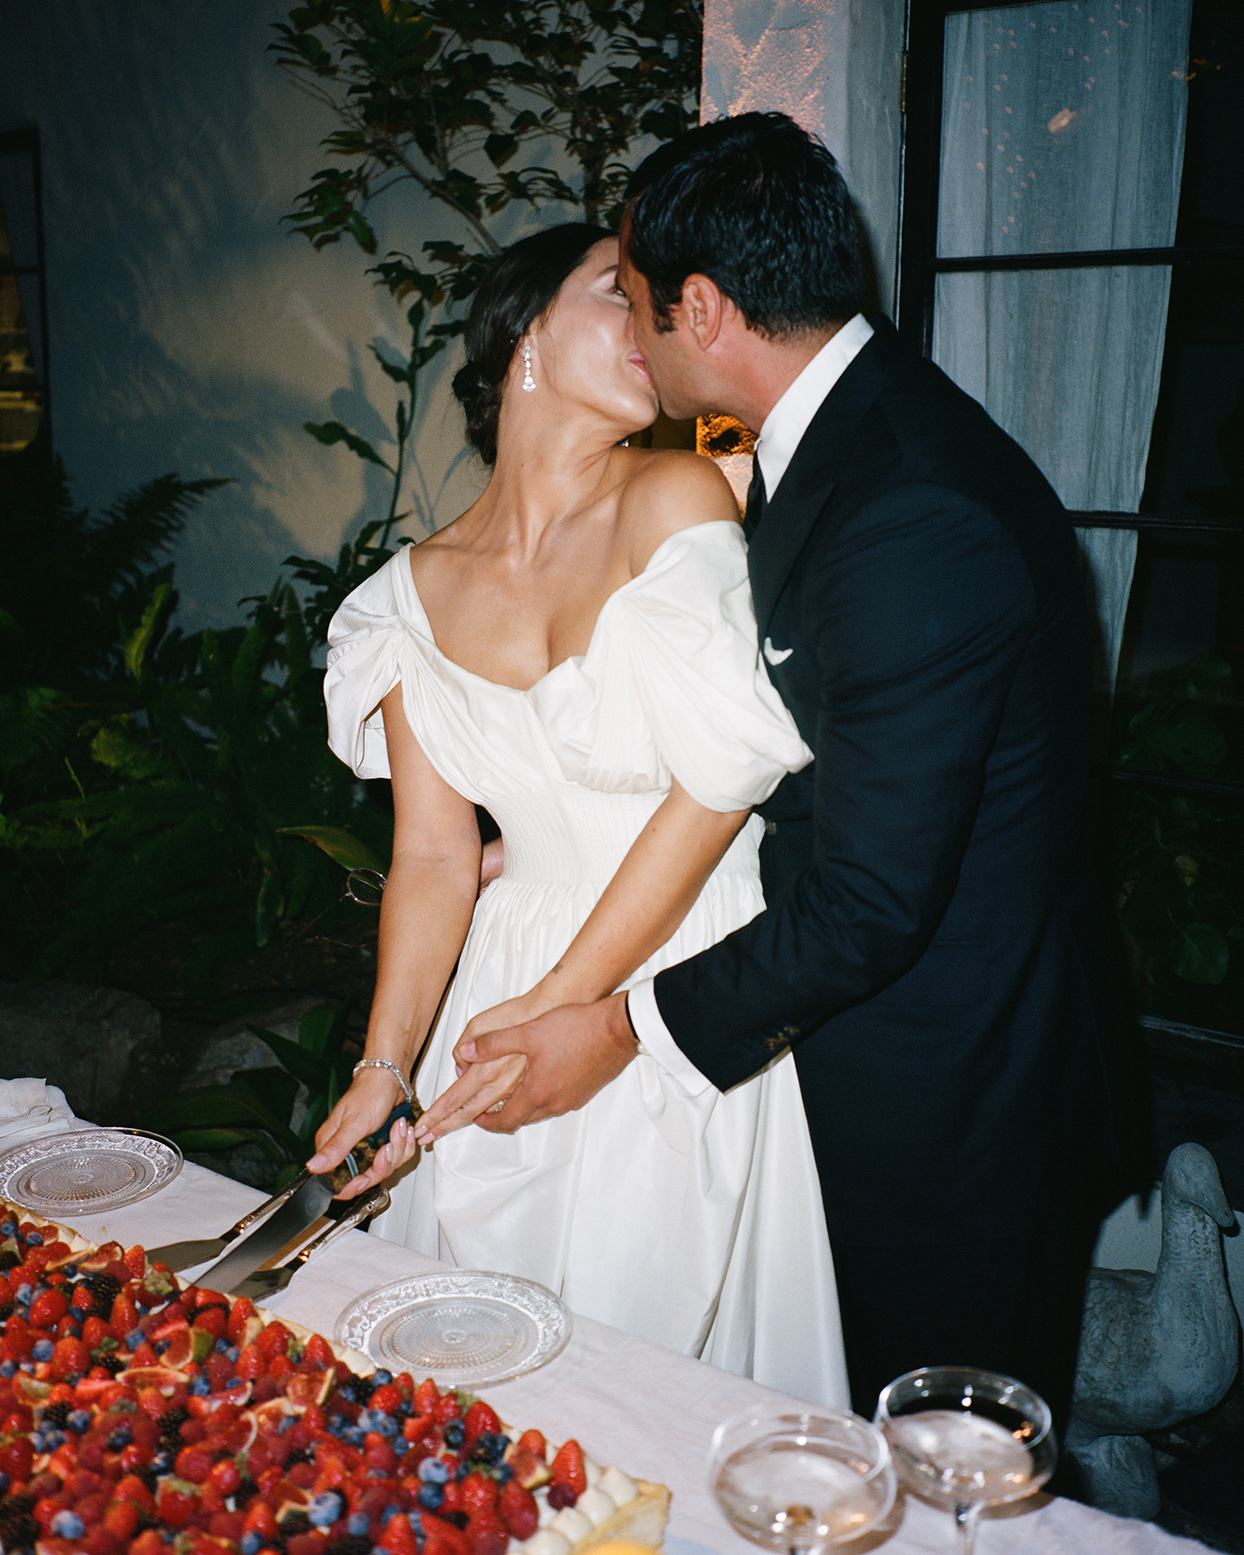 pia davide wedding cake cutting kiss